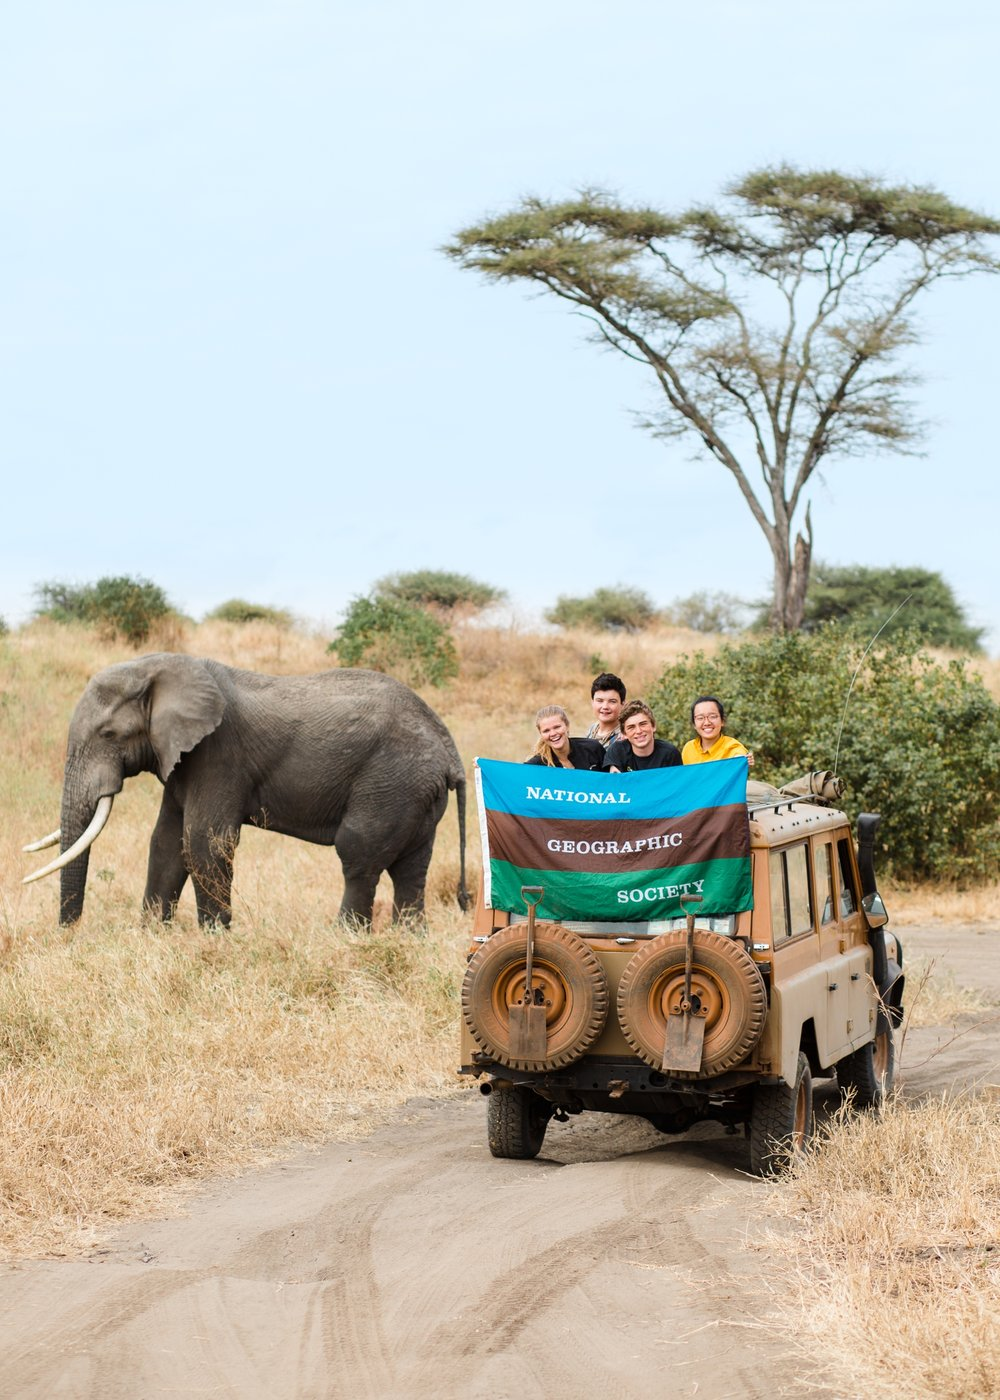 cameron-zegers-travel-photographer-nat-geo-expeditions-tanzania.jpg